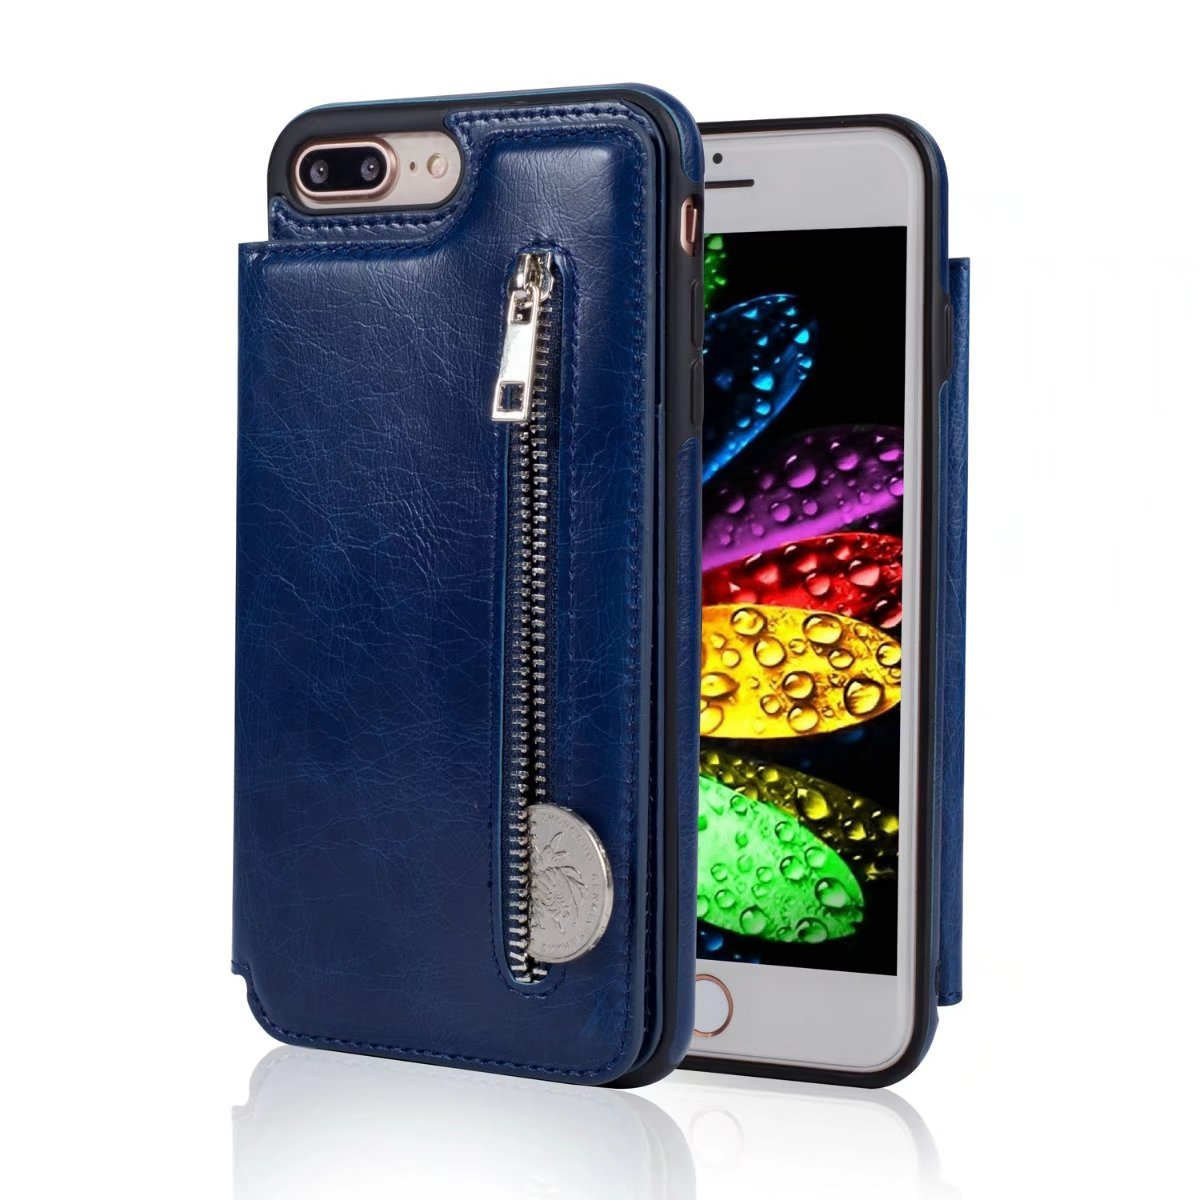 Abtory iPhone 8 Plus Case, Wallet Case with Credit Card Holder Slim Leather Shockproof Protective Hybrid Case with Stand Phone Case for iPhone 7 Plus/iPhone 8 Plus Blue by Abtory (Image #2)